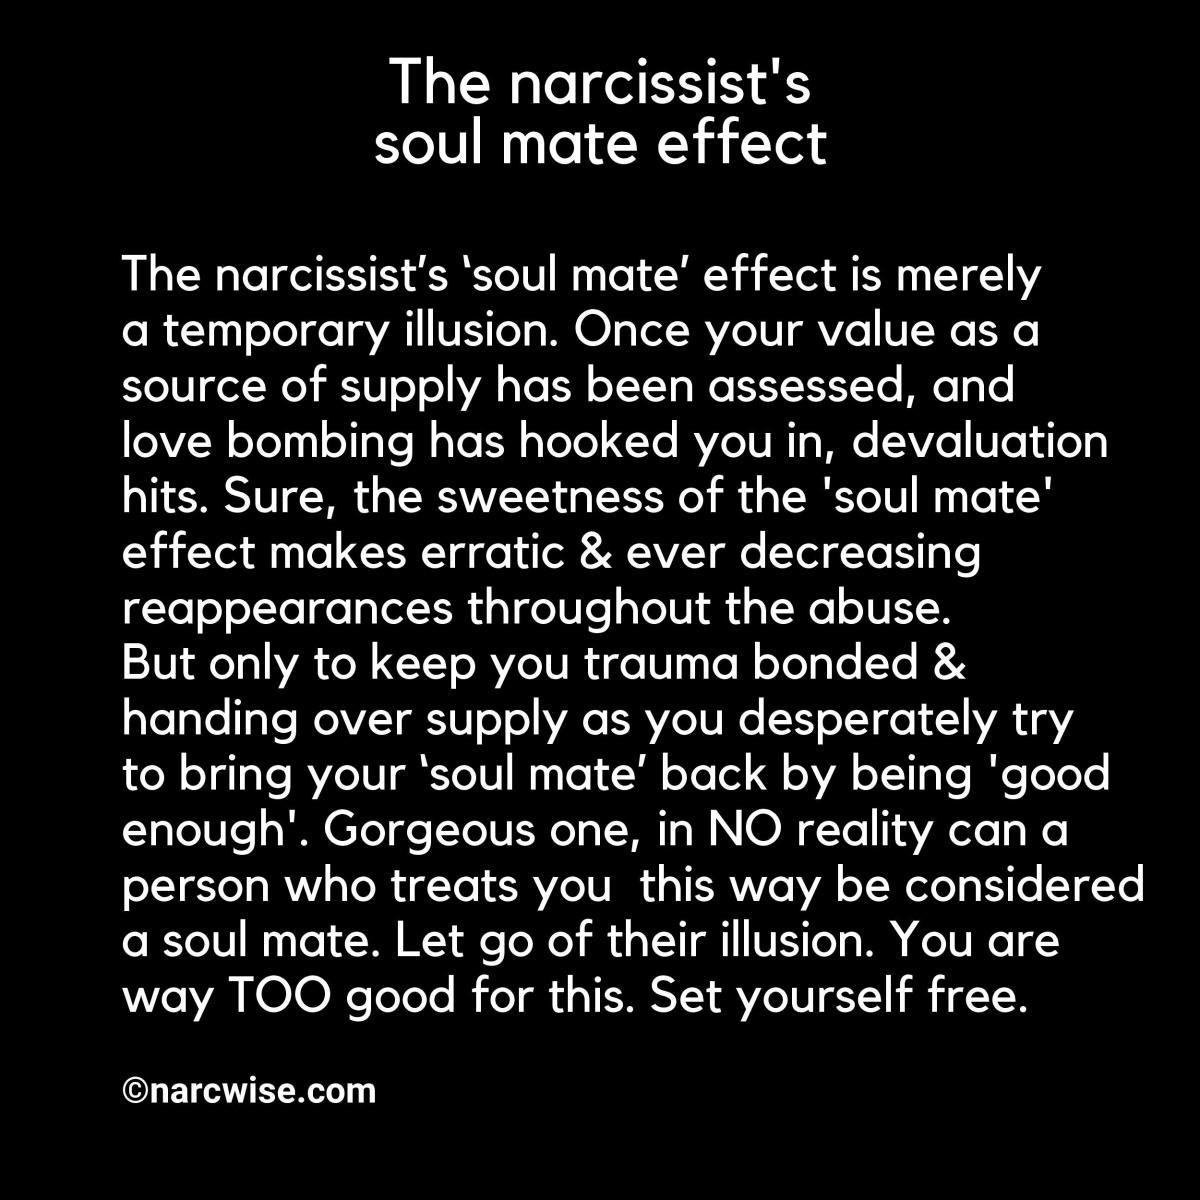 The narcissist's soul mate effect